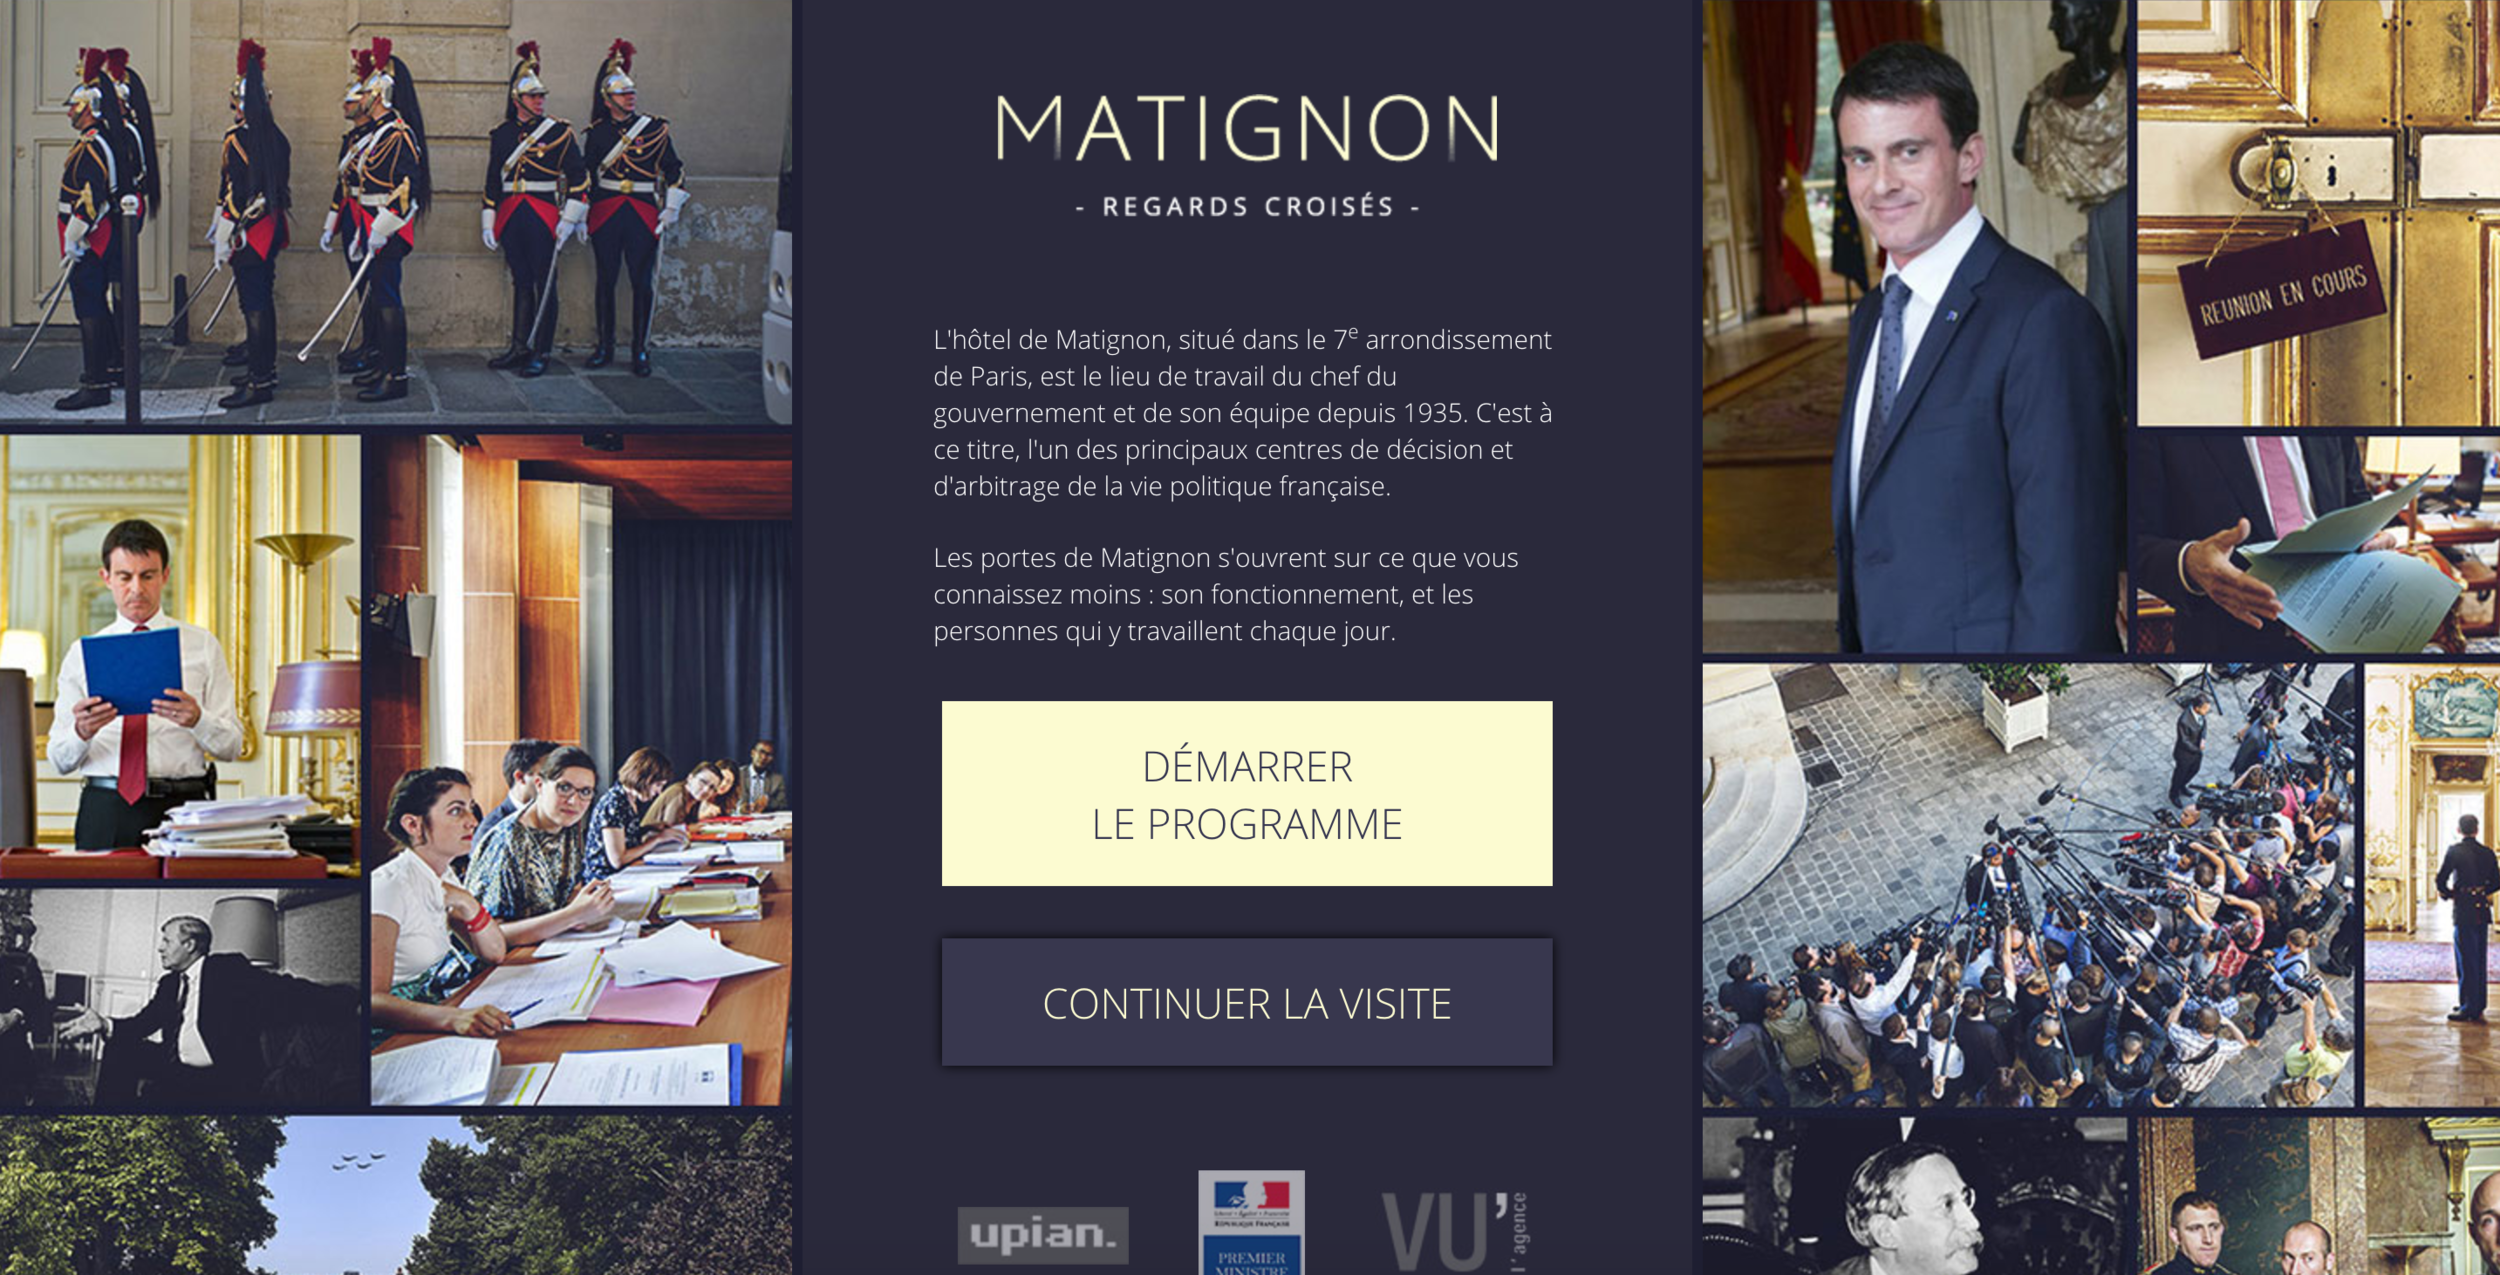 Web documentary on The Hôtel Matignon is the official residence of the Prime Minister of France For the french government.